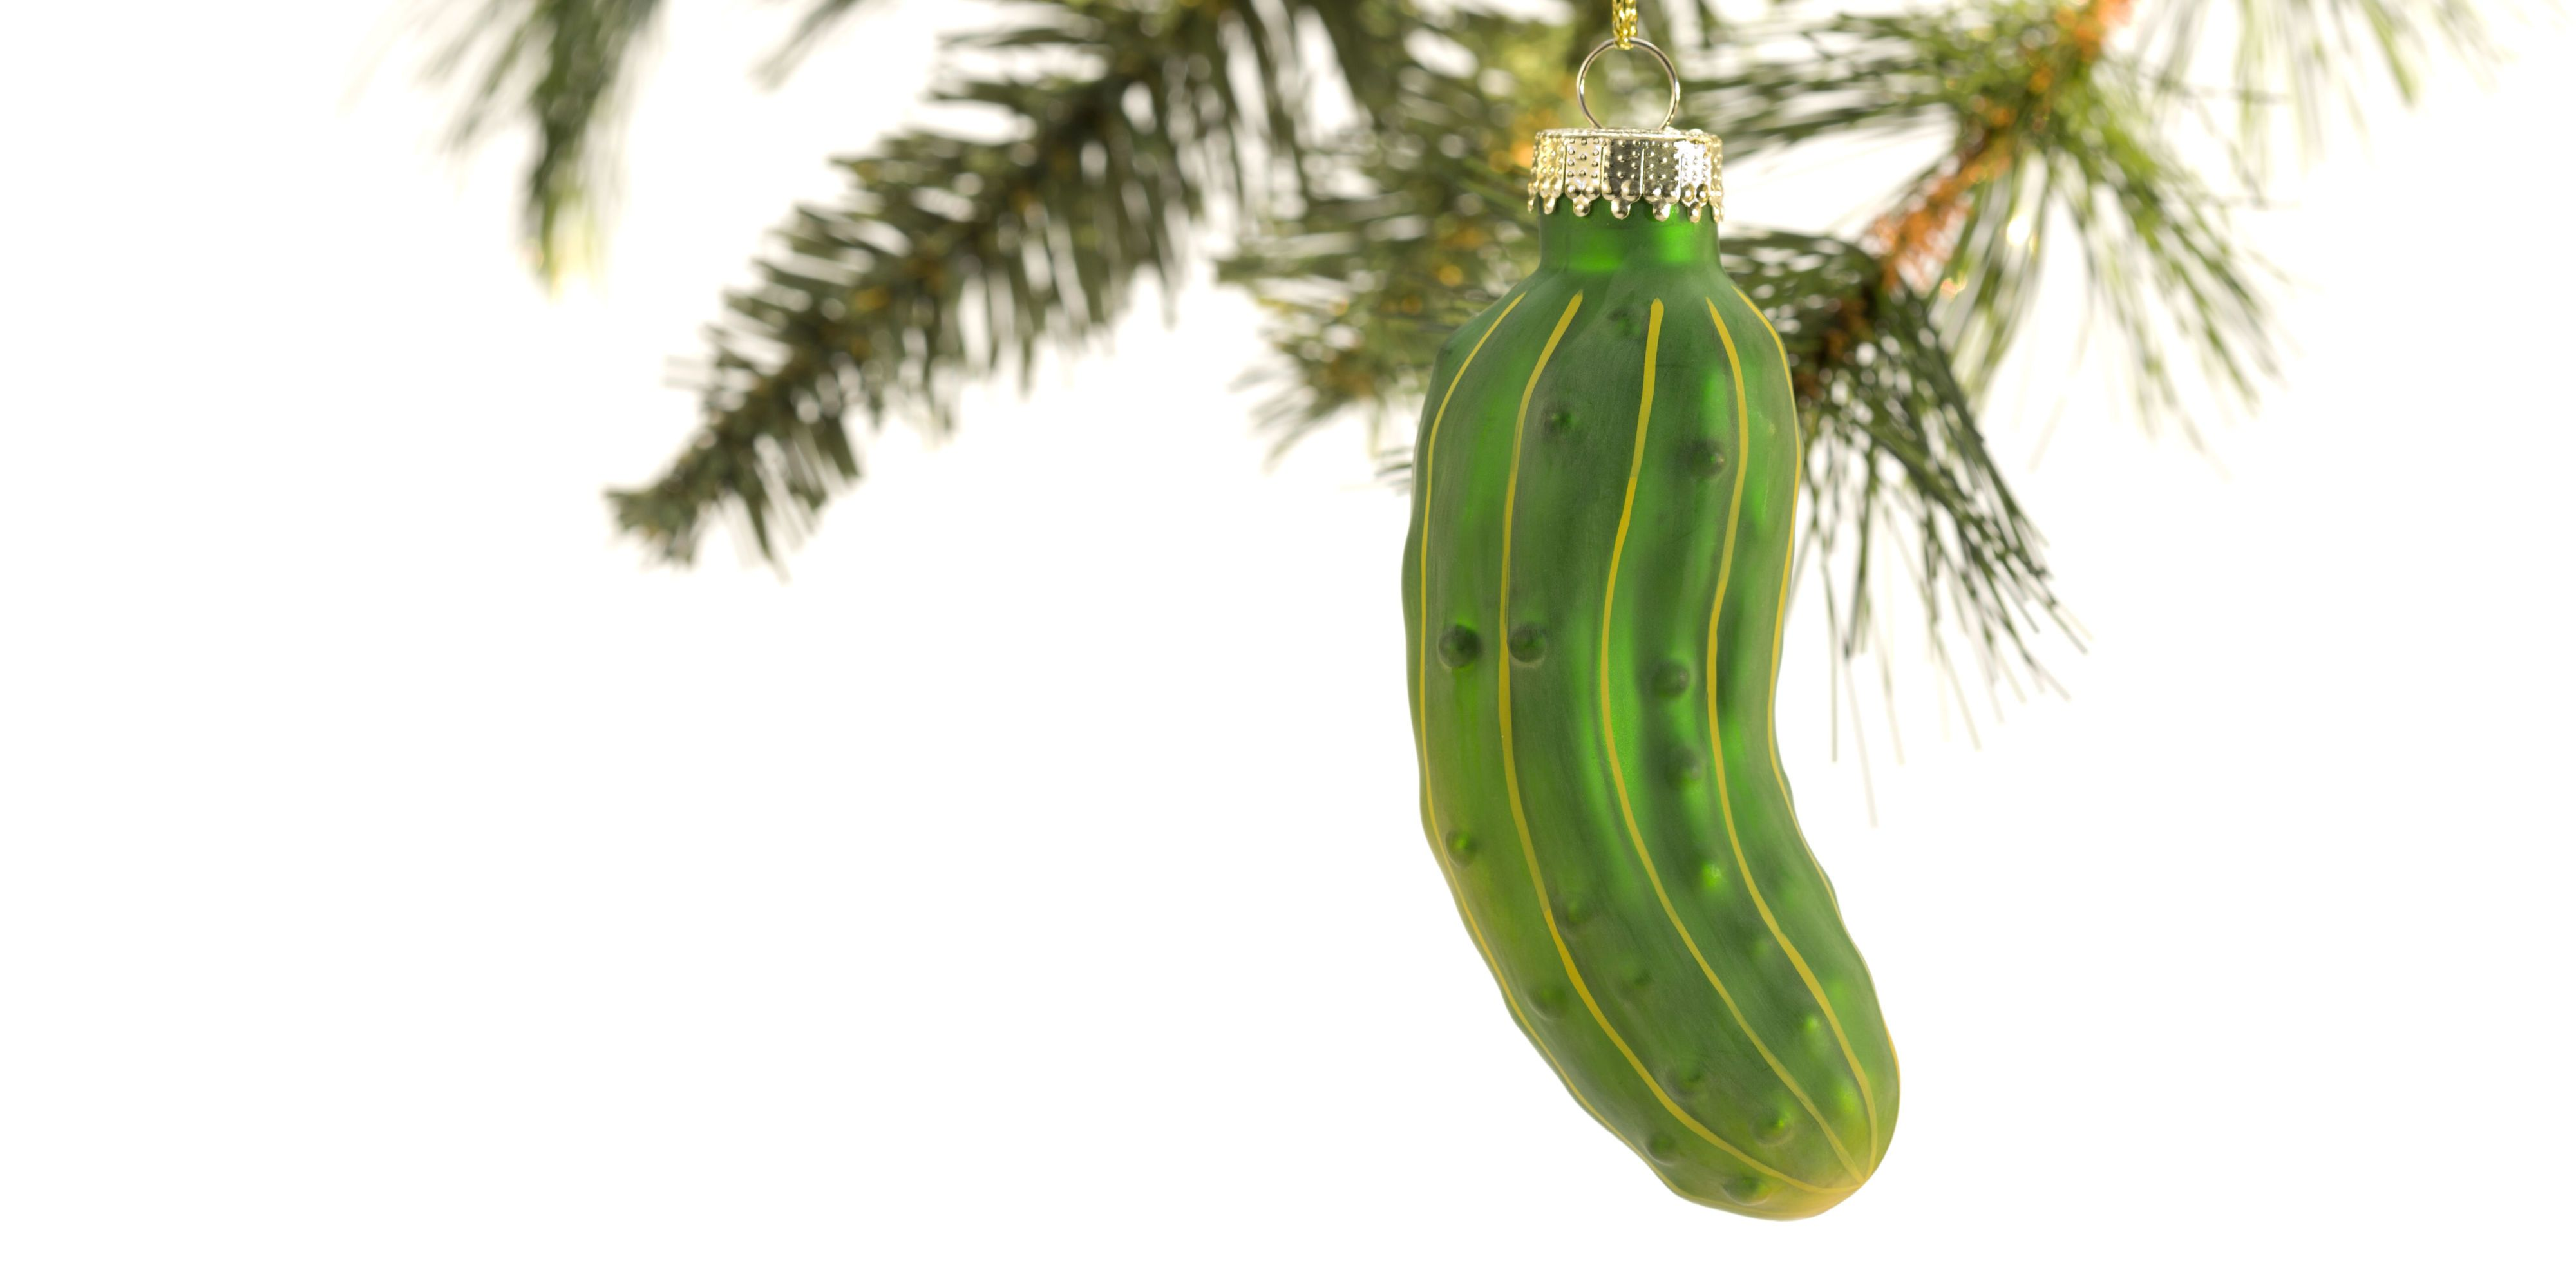 photograph about Christmas Pickle Story Printable called Historical past of the Pickle Xmas Ornament Culture